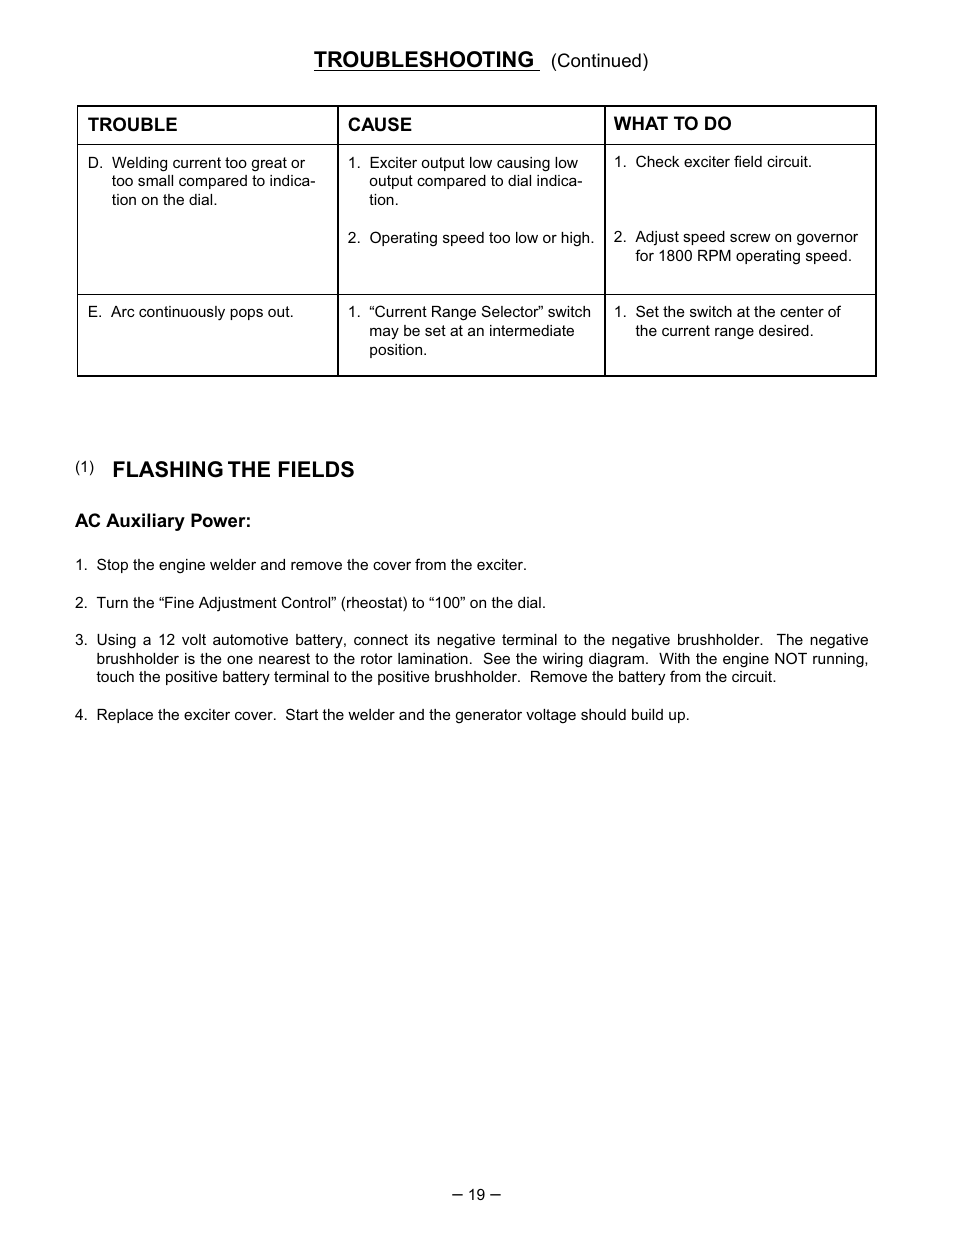 medium resolution of troubleshooting flashing the fields lincoln electric perkins sa 250 user manual page 20 28